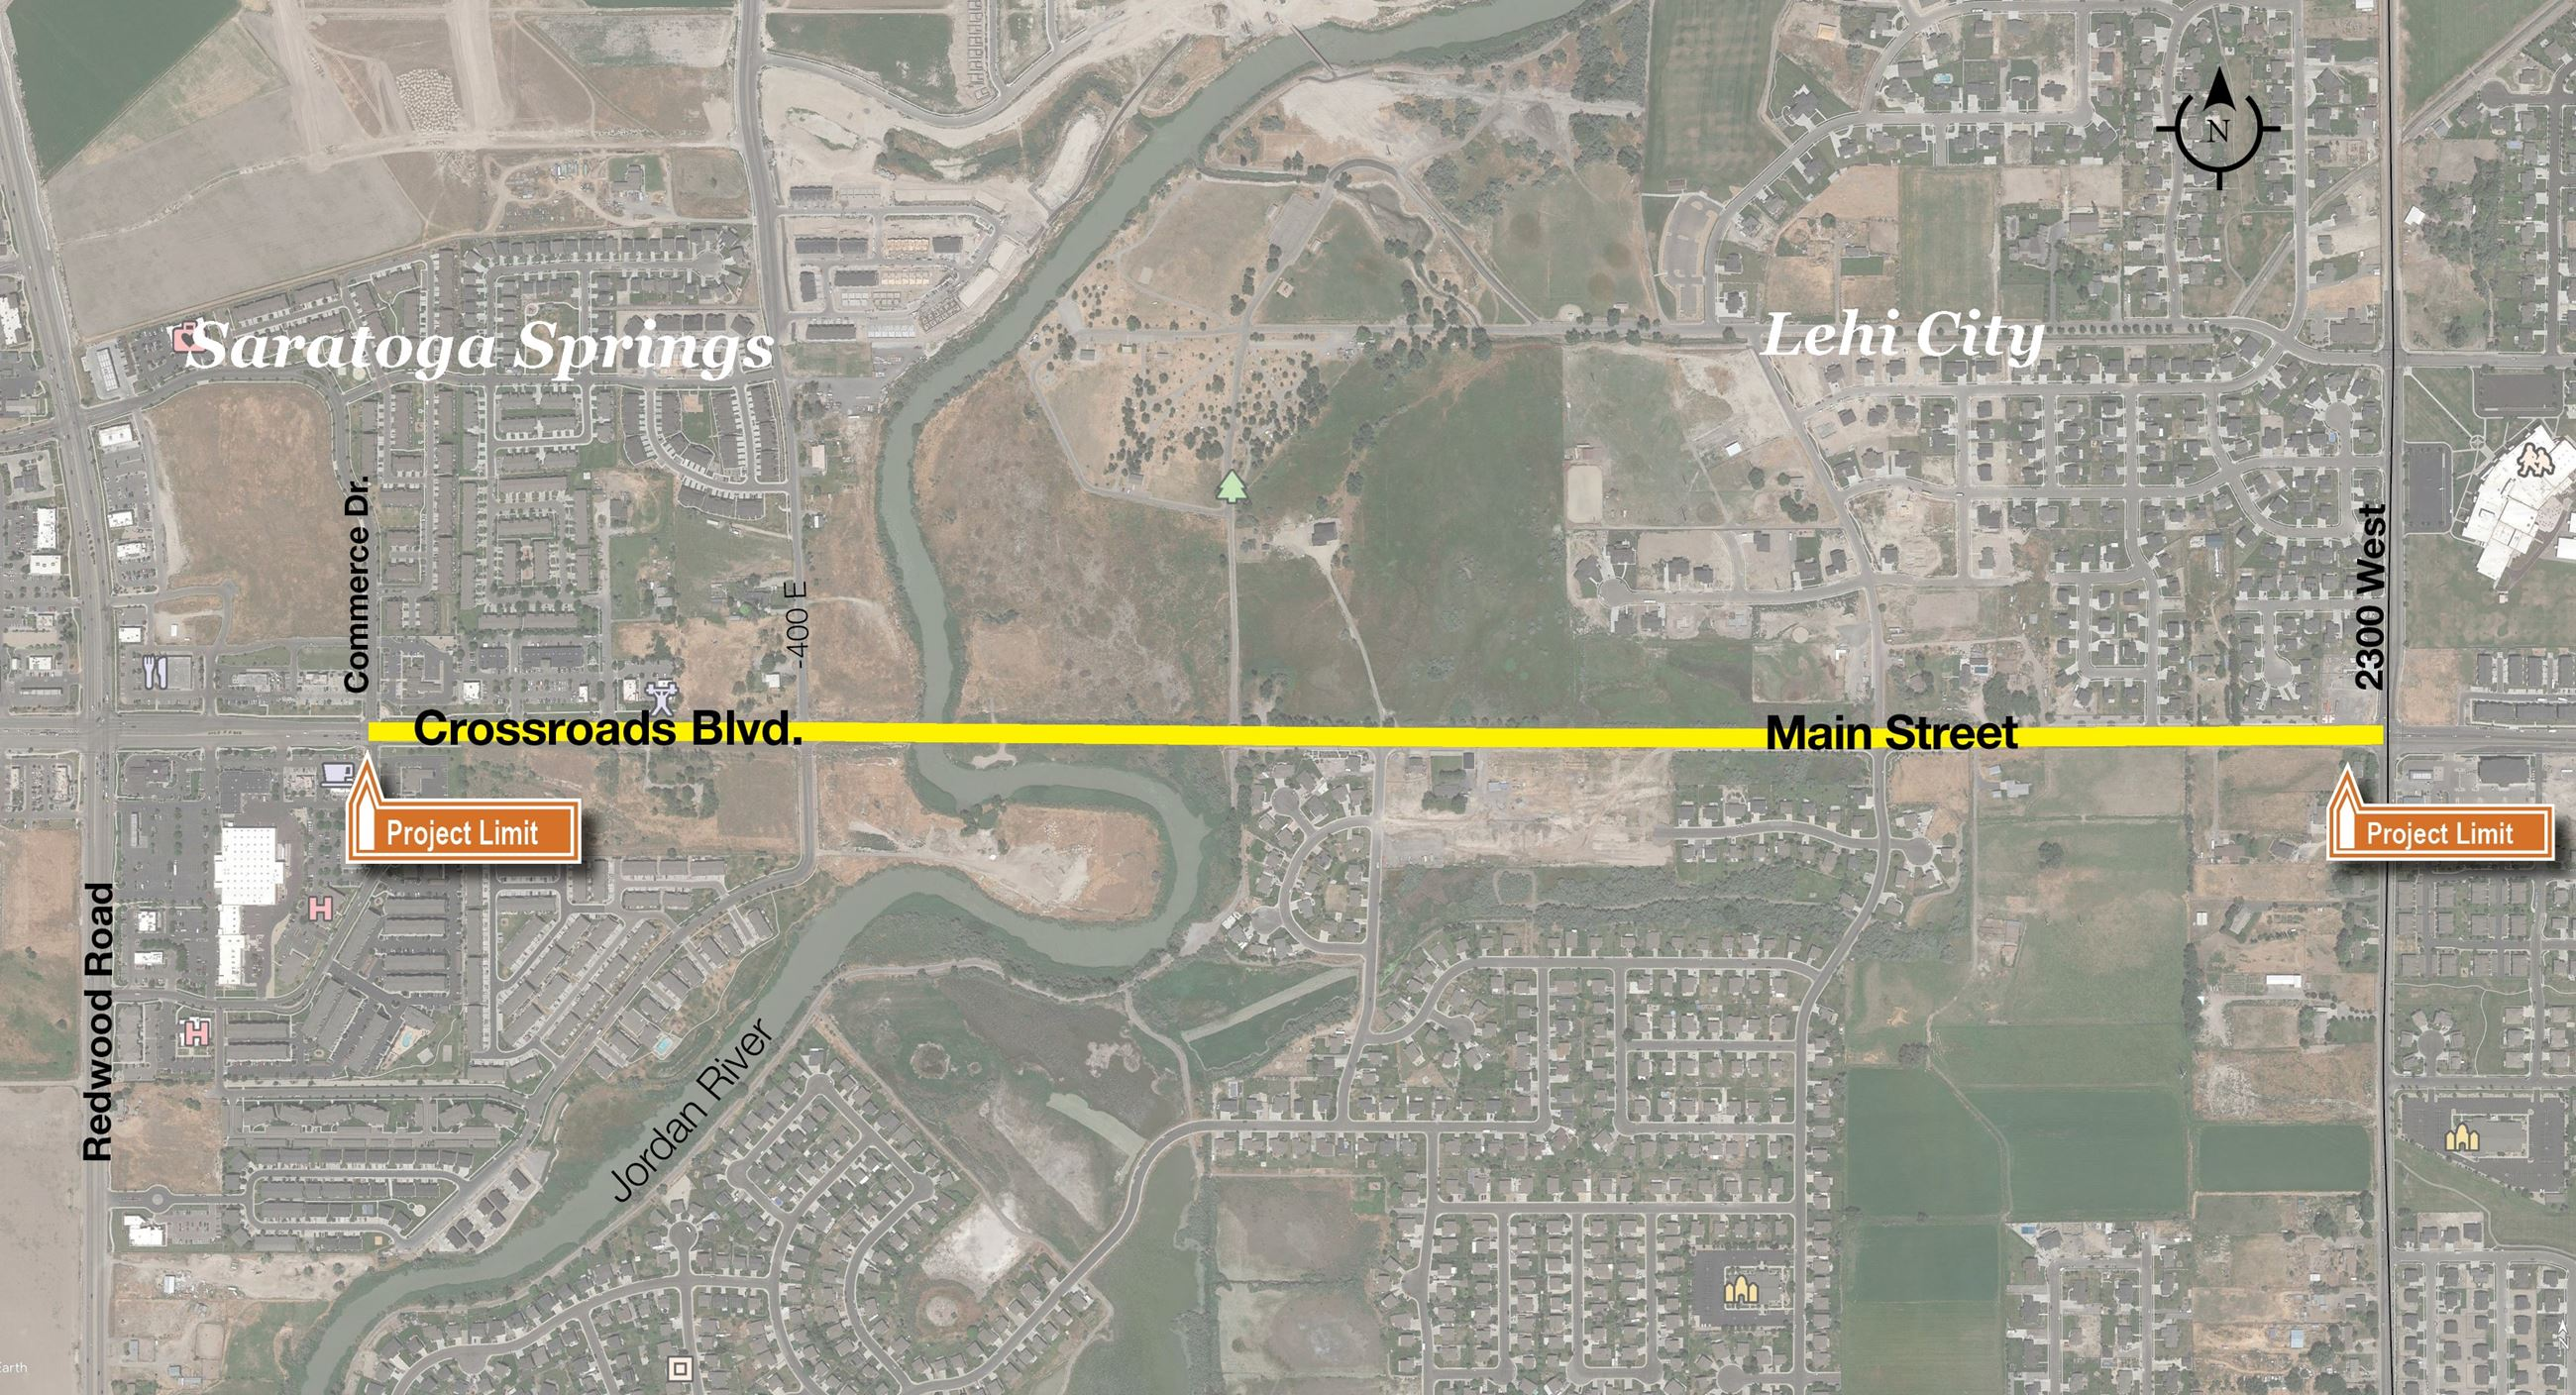 map of Lehi Main Street with Markings showing the construction zone Opens in new window